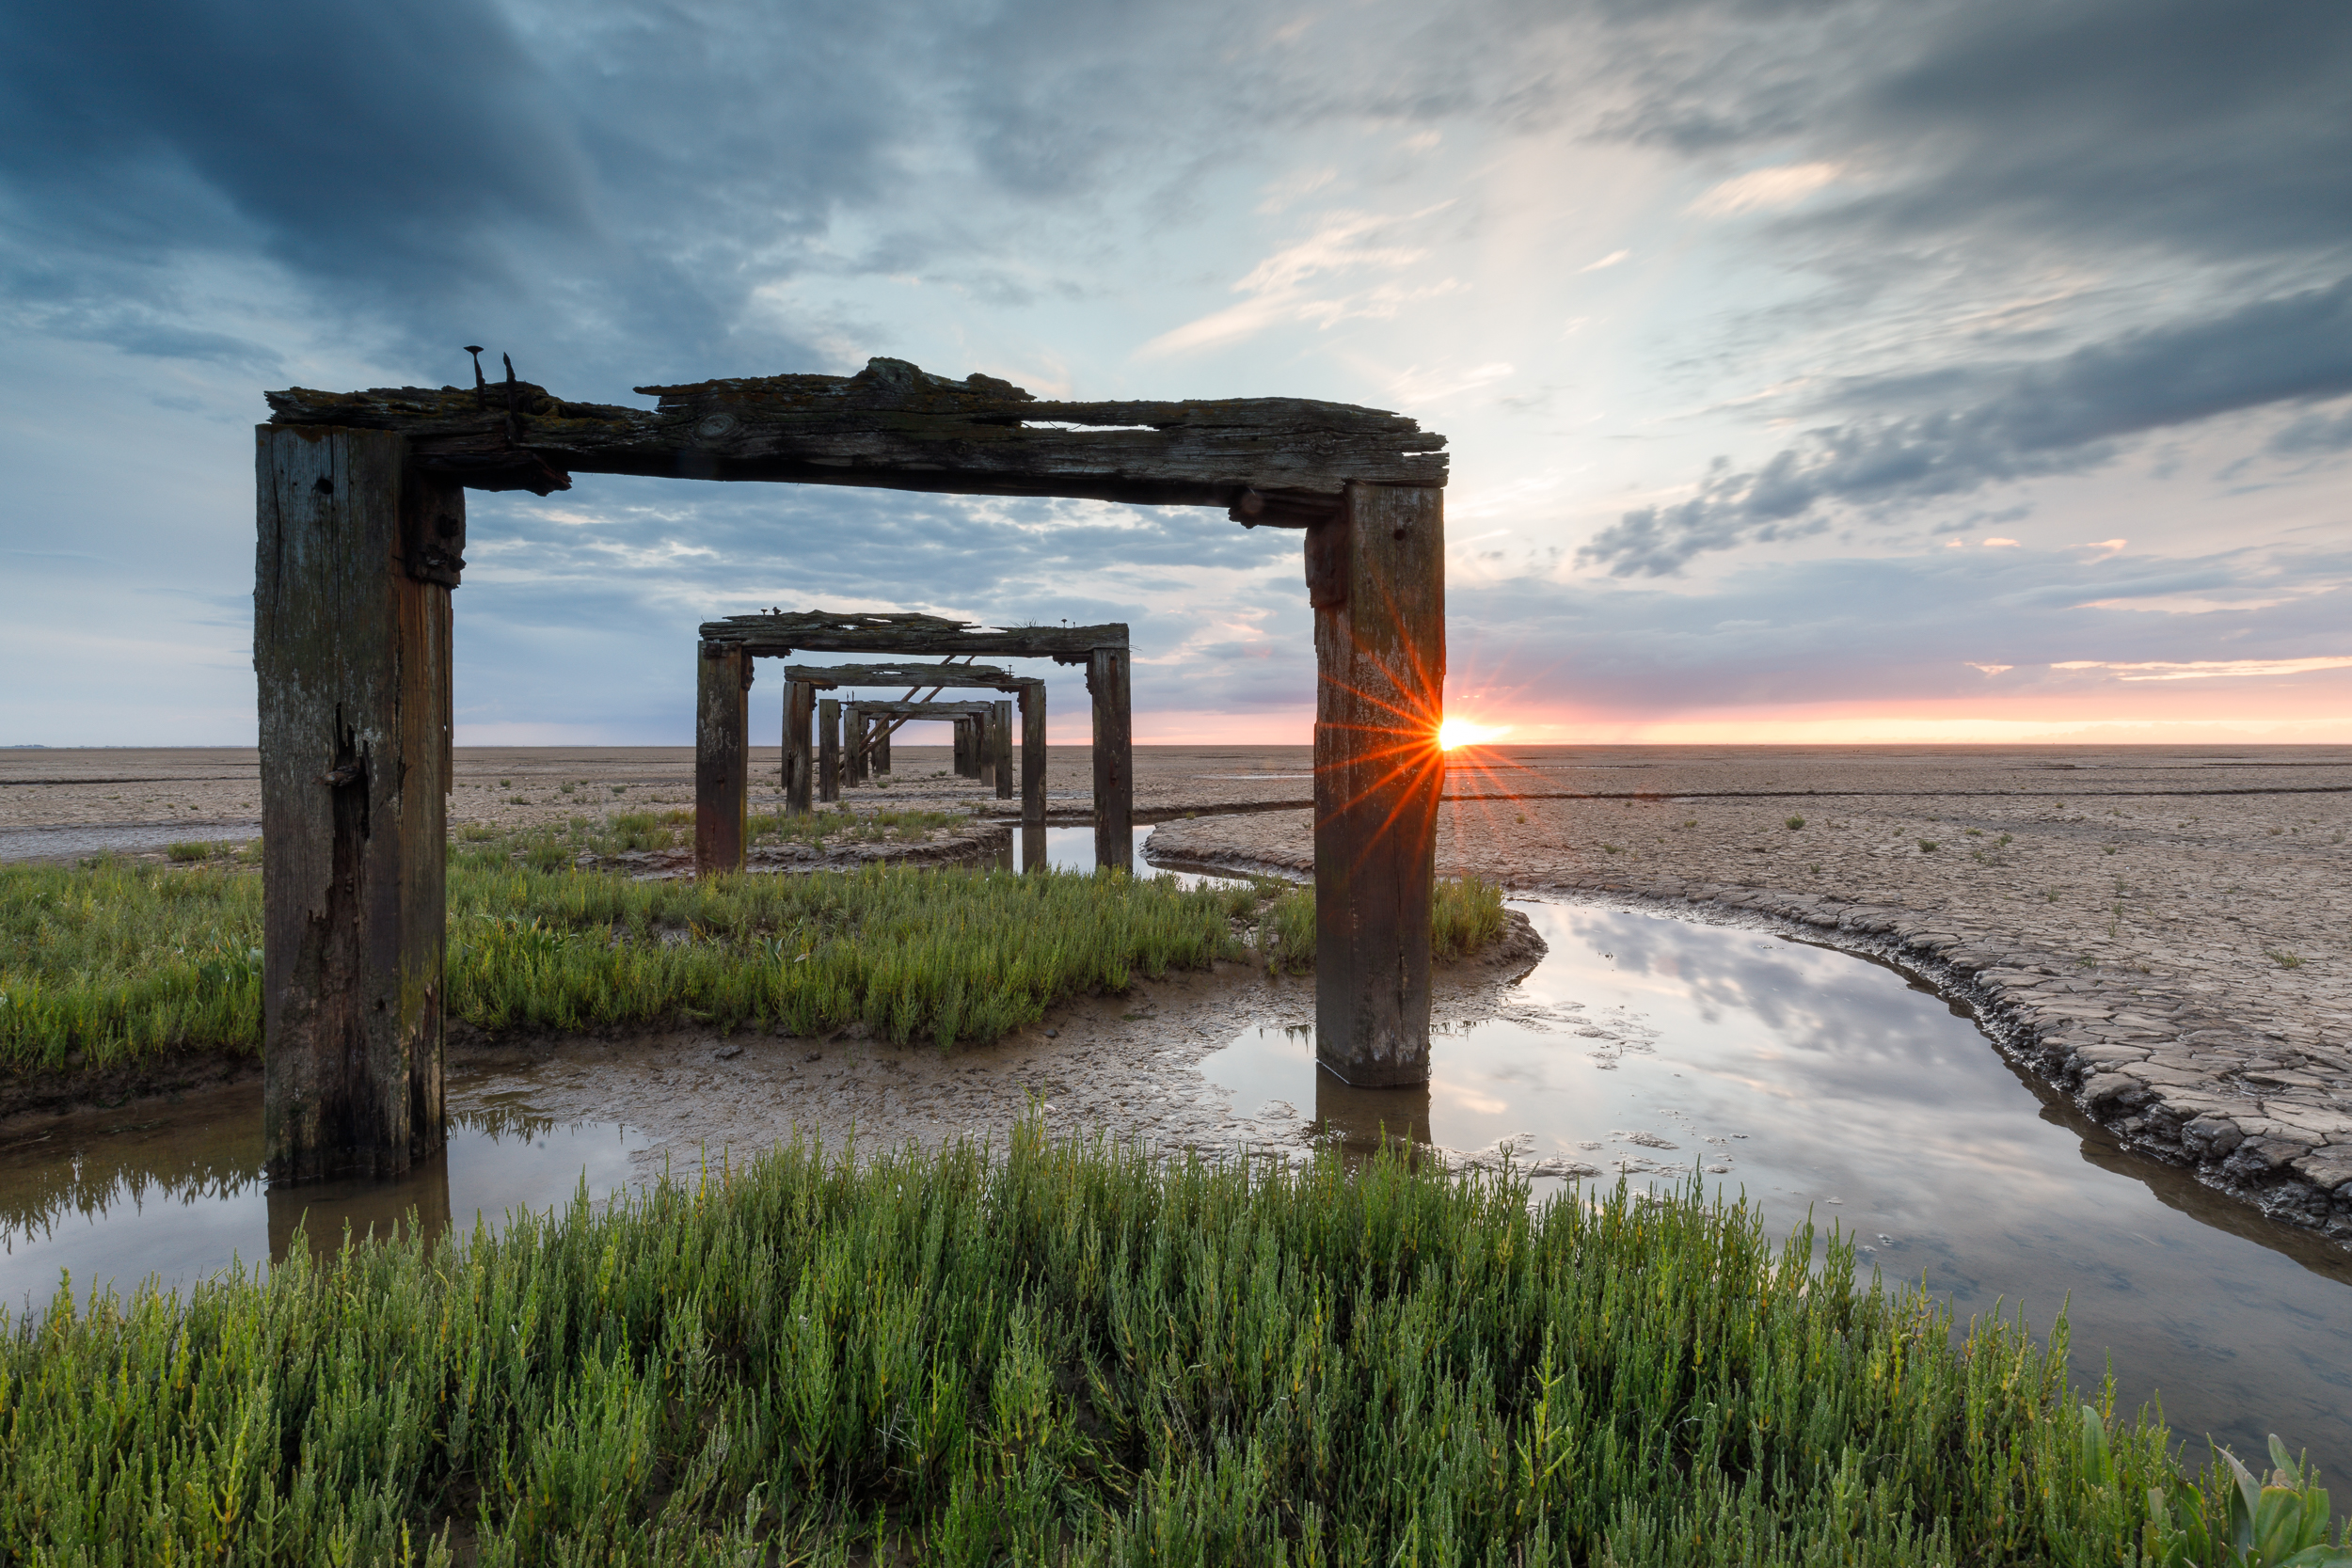 Sunset on the Norfolk coast, Canon 5D mkIV, 16-35mm @ 16mm, 5sec, f22, ISO 100, Lee 0.9 reverse ND grad and Little stopper 0.9 Reverse ND grad and landscape circular polariser filters.